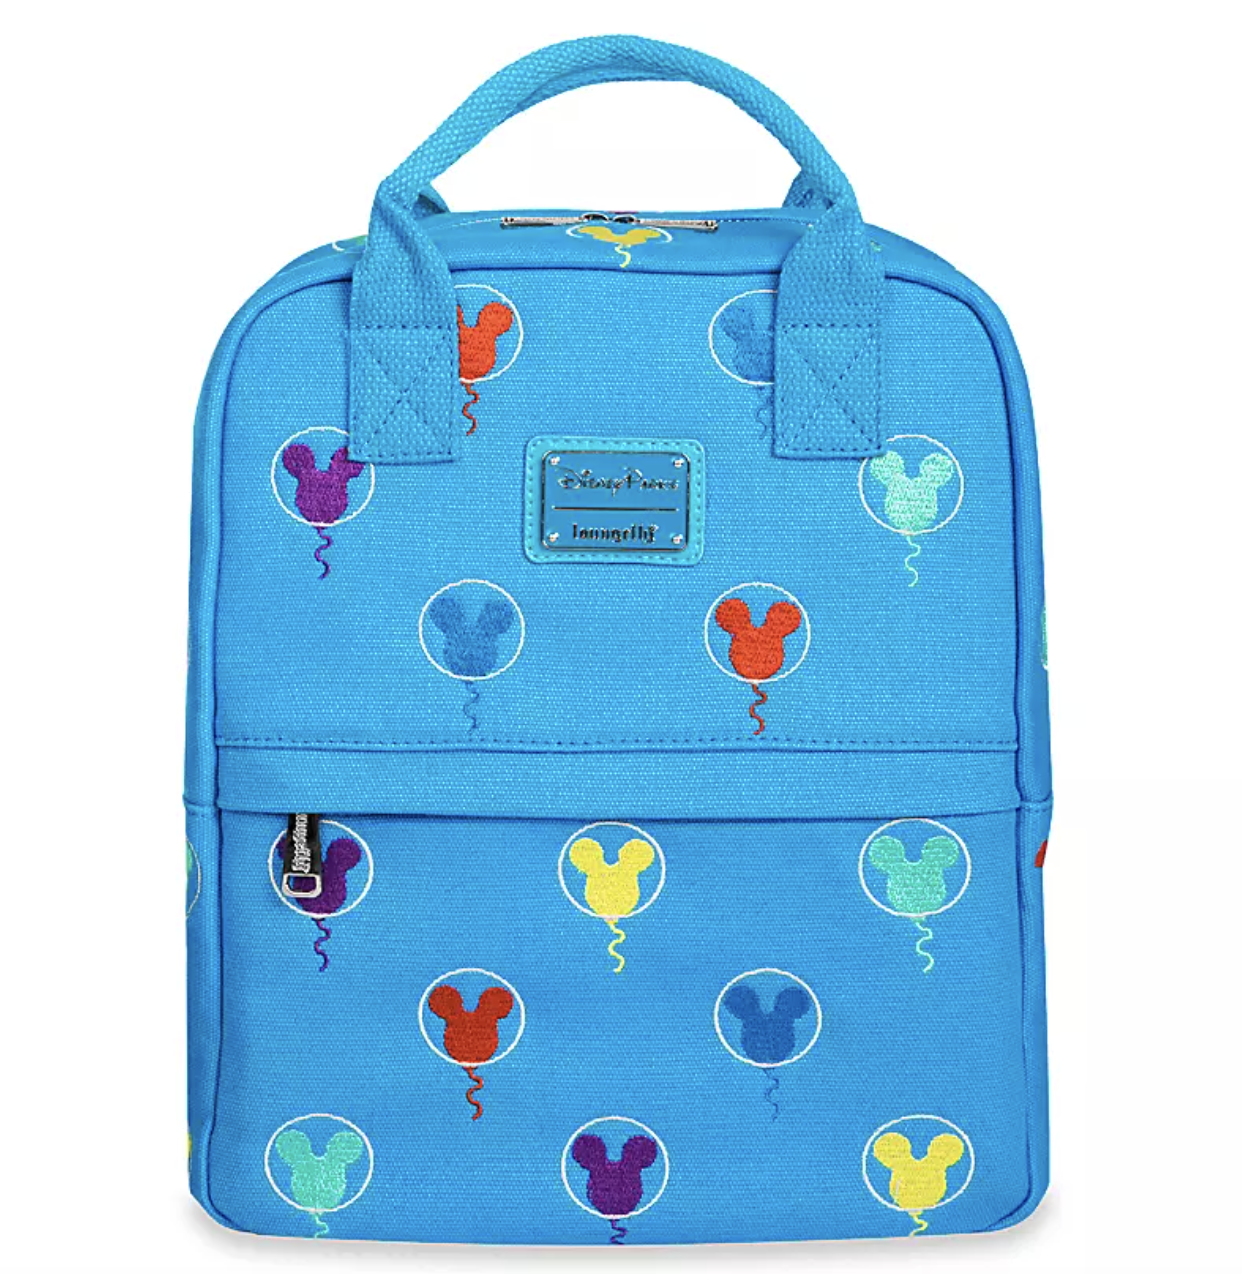 a blue rectangular back pack with embroidered mickey balloons